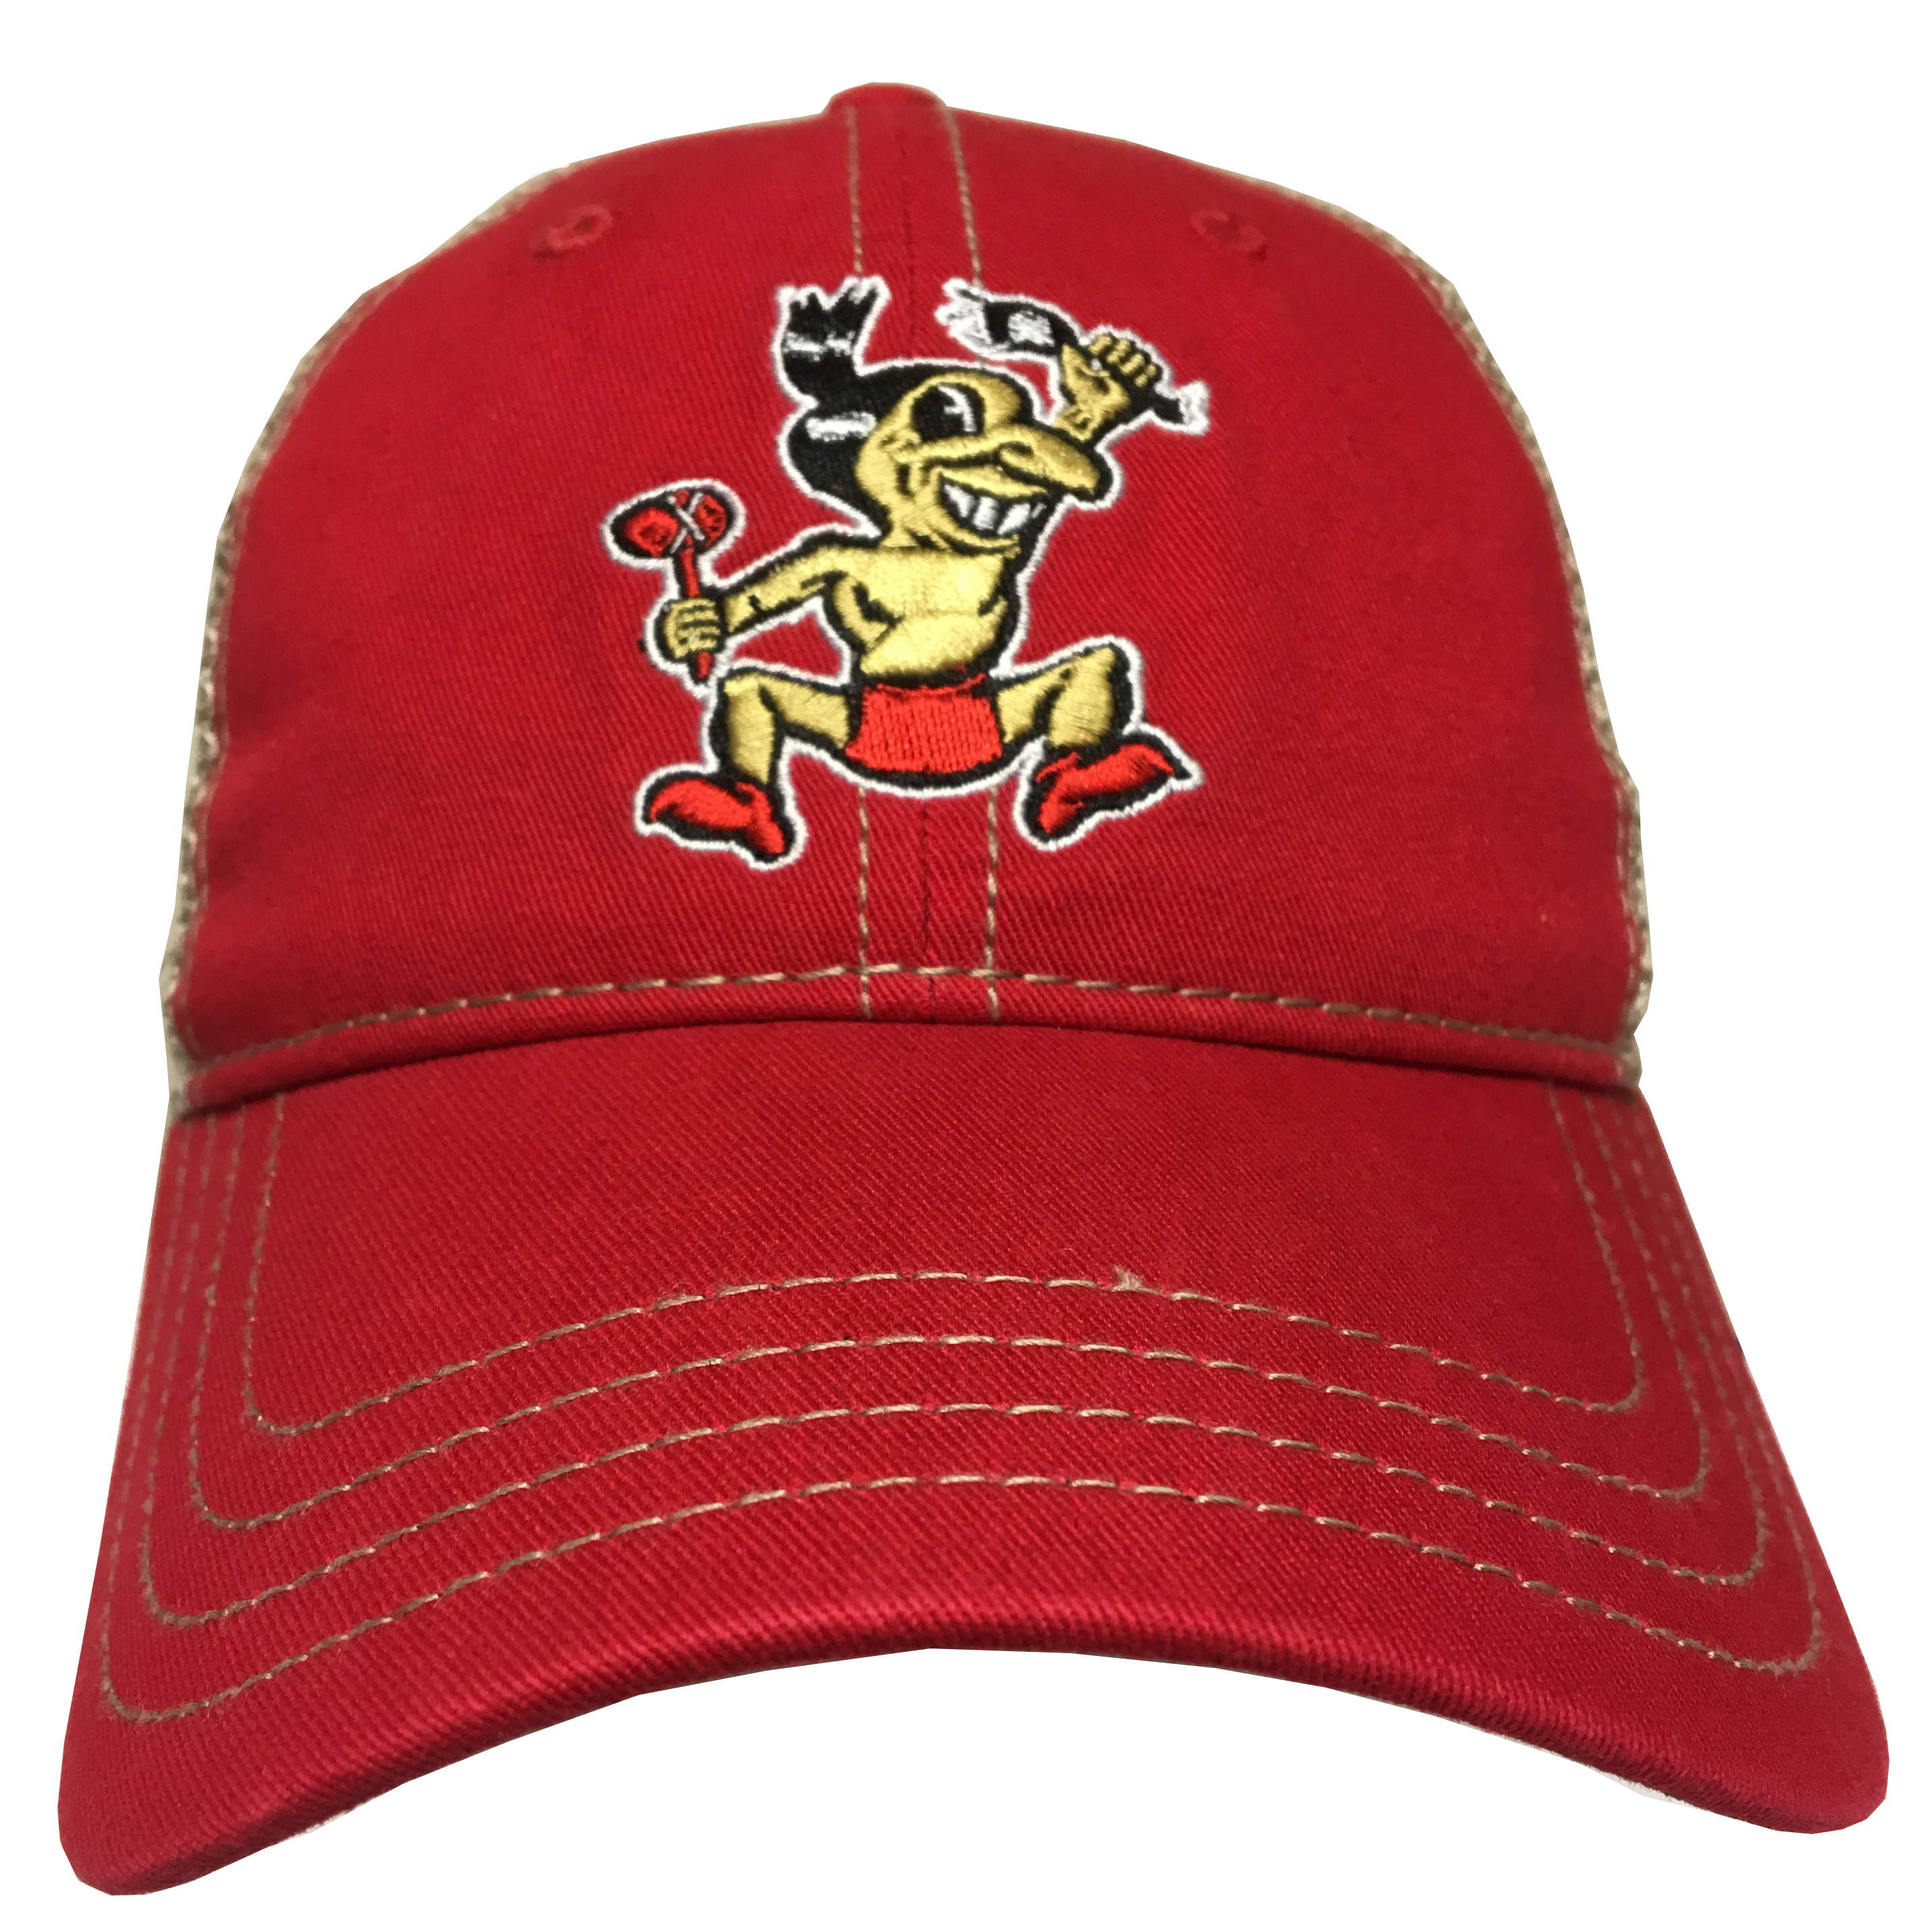 Jumping Joe Vintage Cap